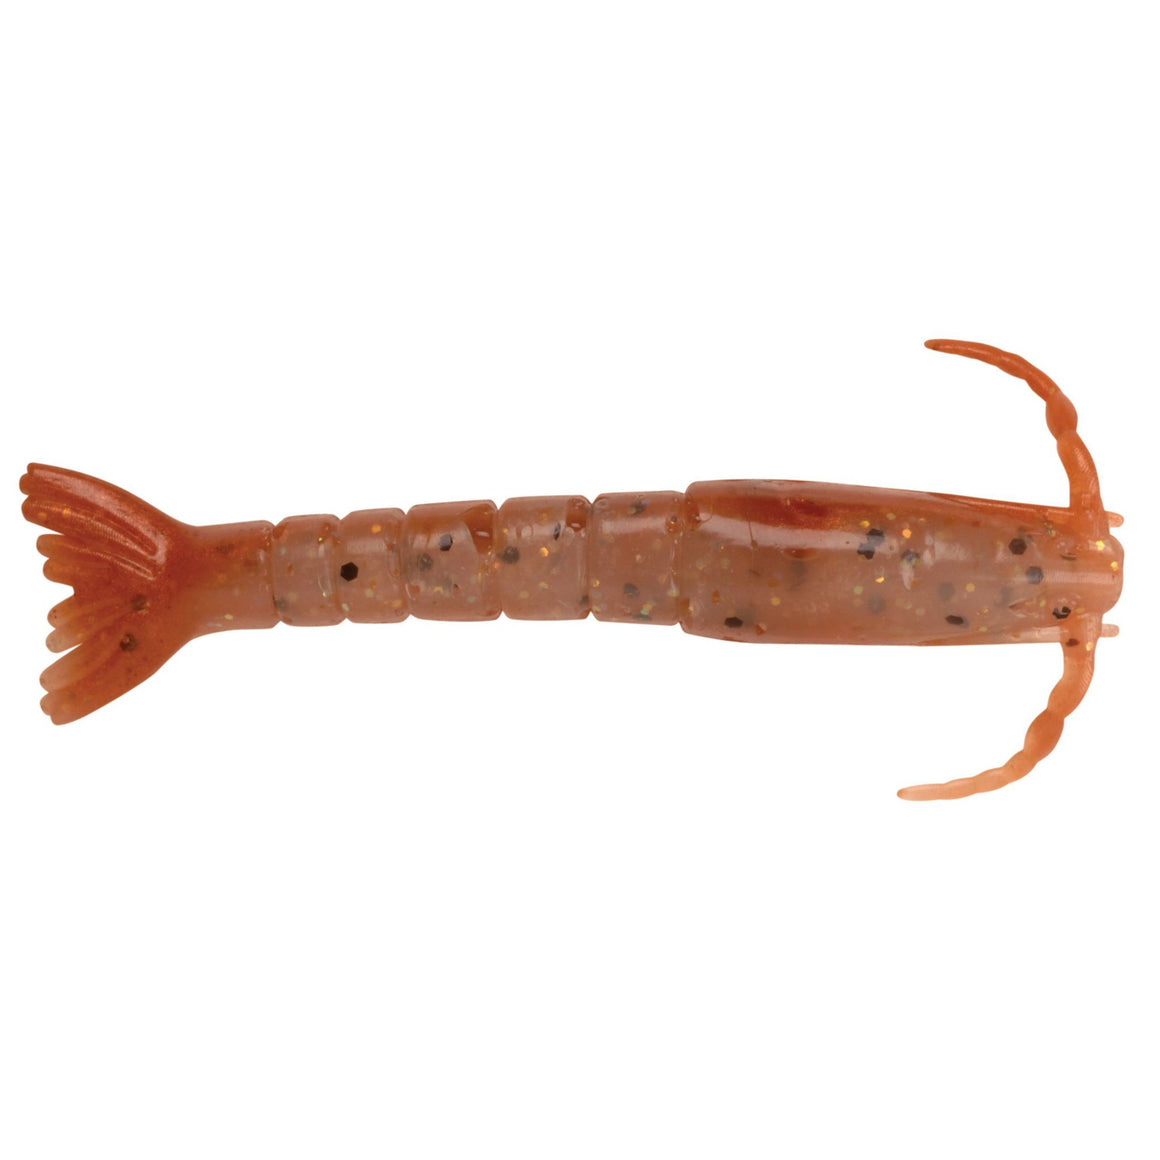 "Berkley Gulp! Shrimp Soft Bait 2"" Length, New Penny"